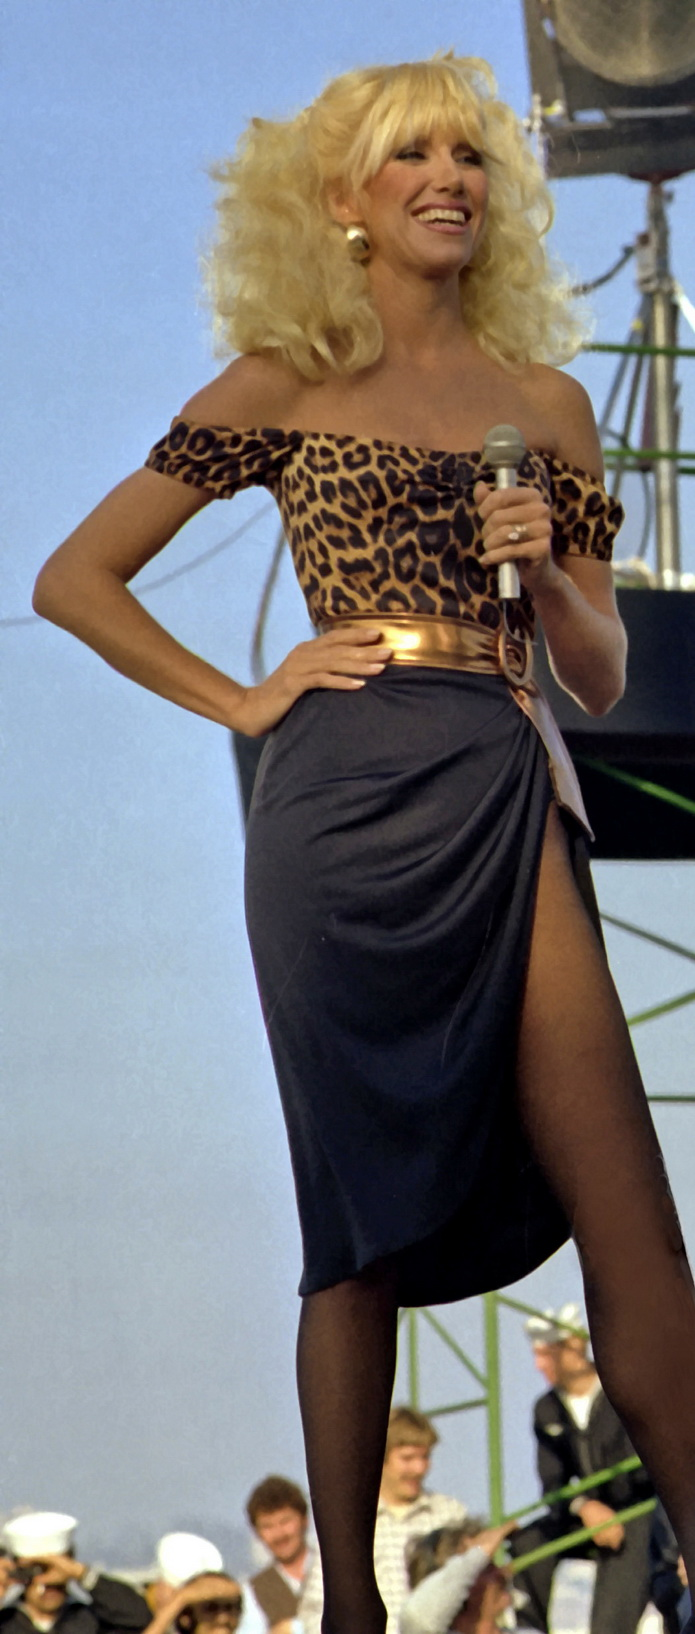 Suzanne Somers in animal print top entertains the crew aboard the aircraft carrier, 1980s fashion